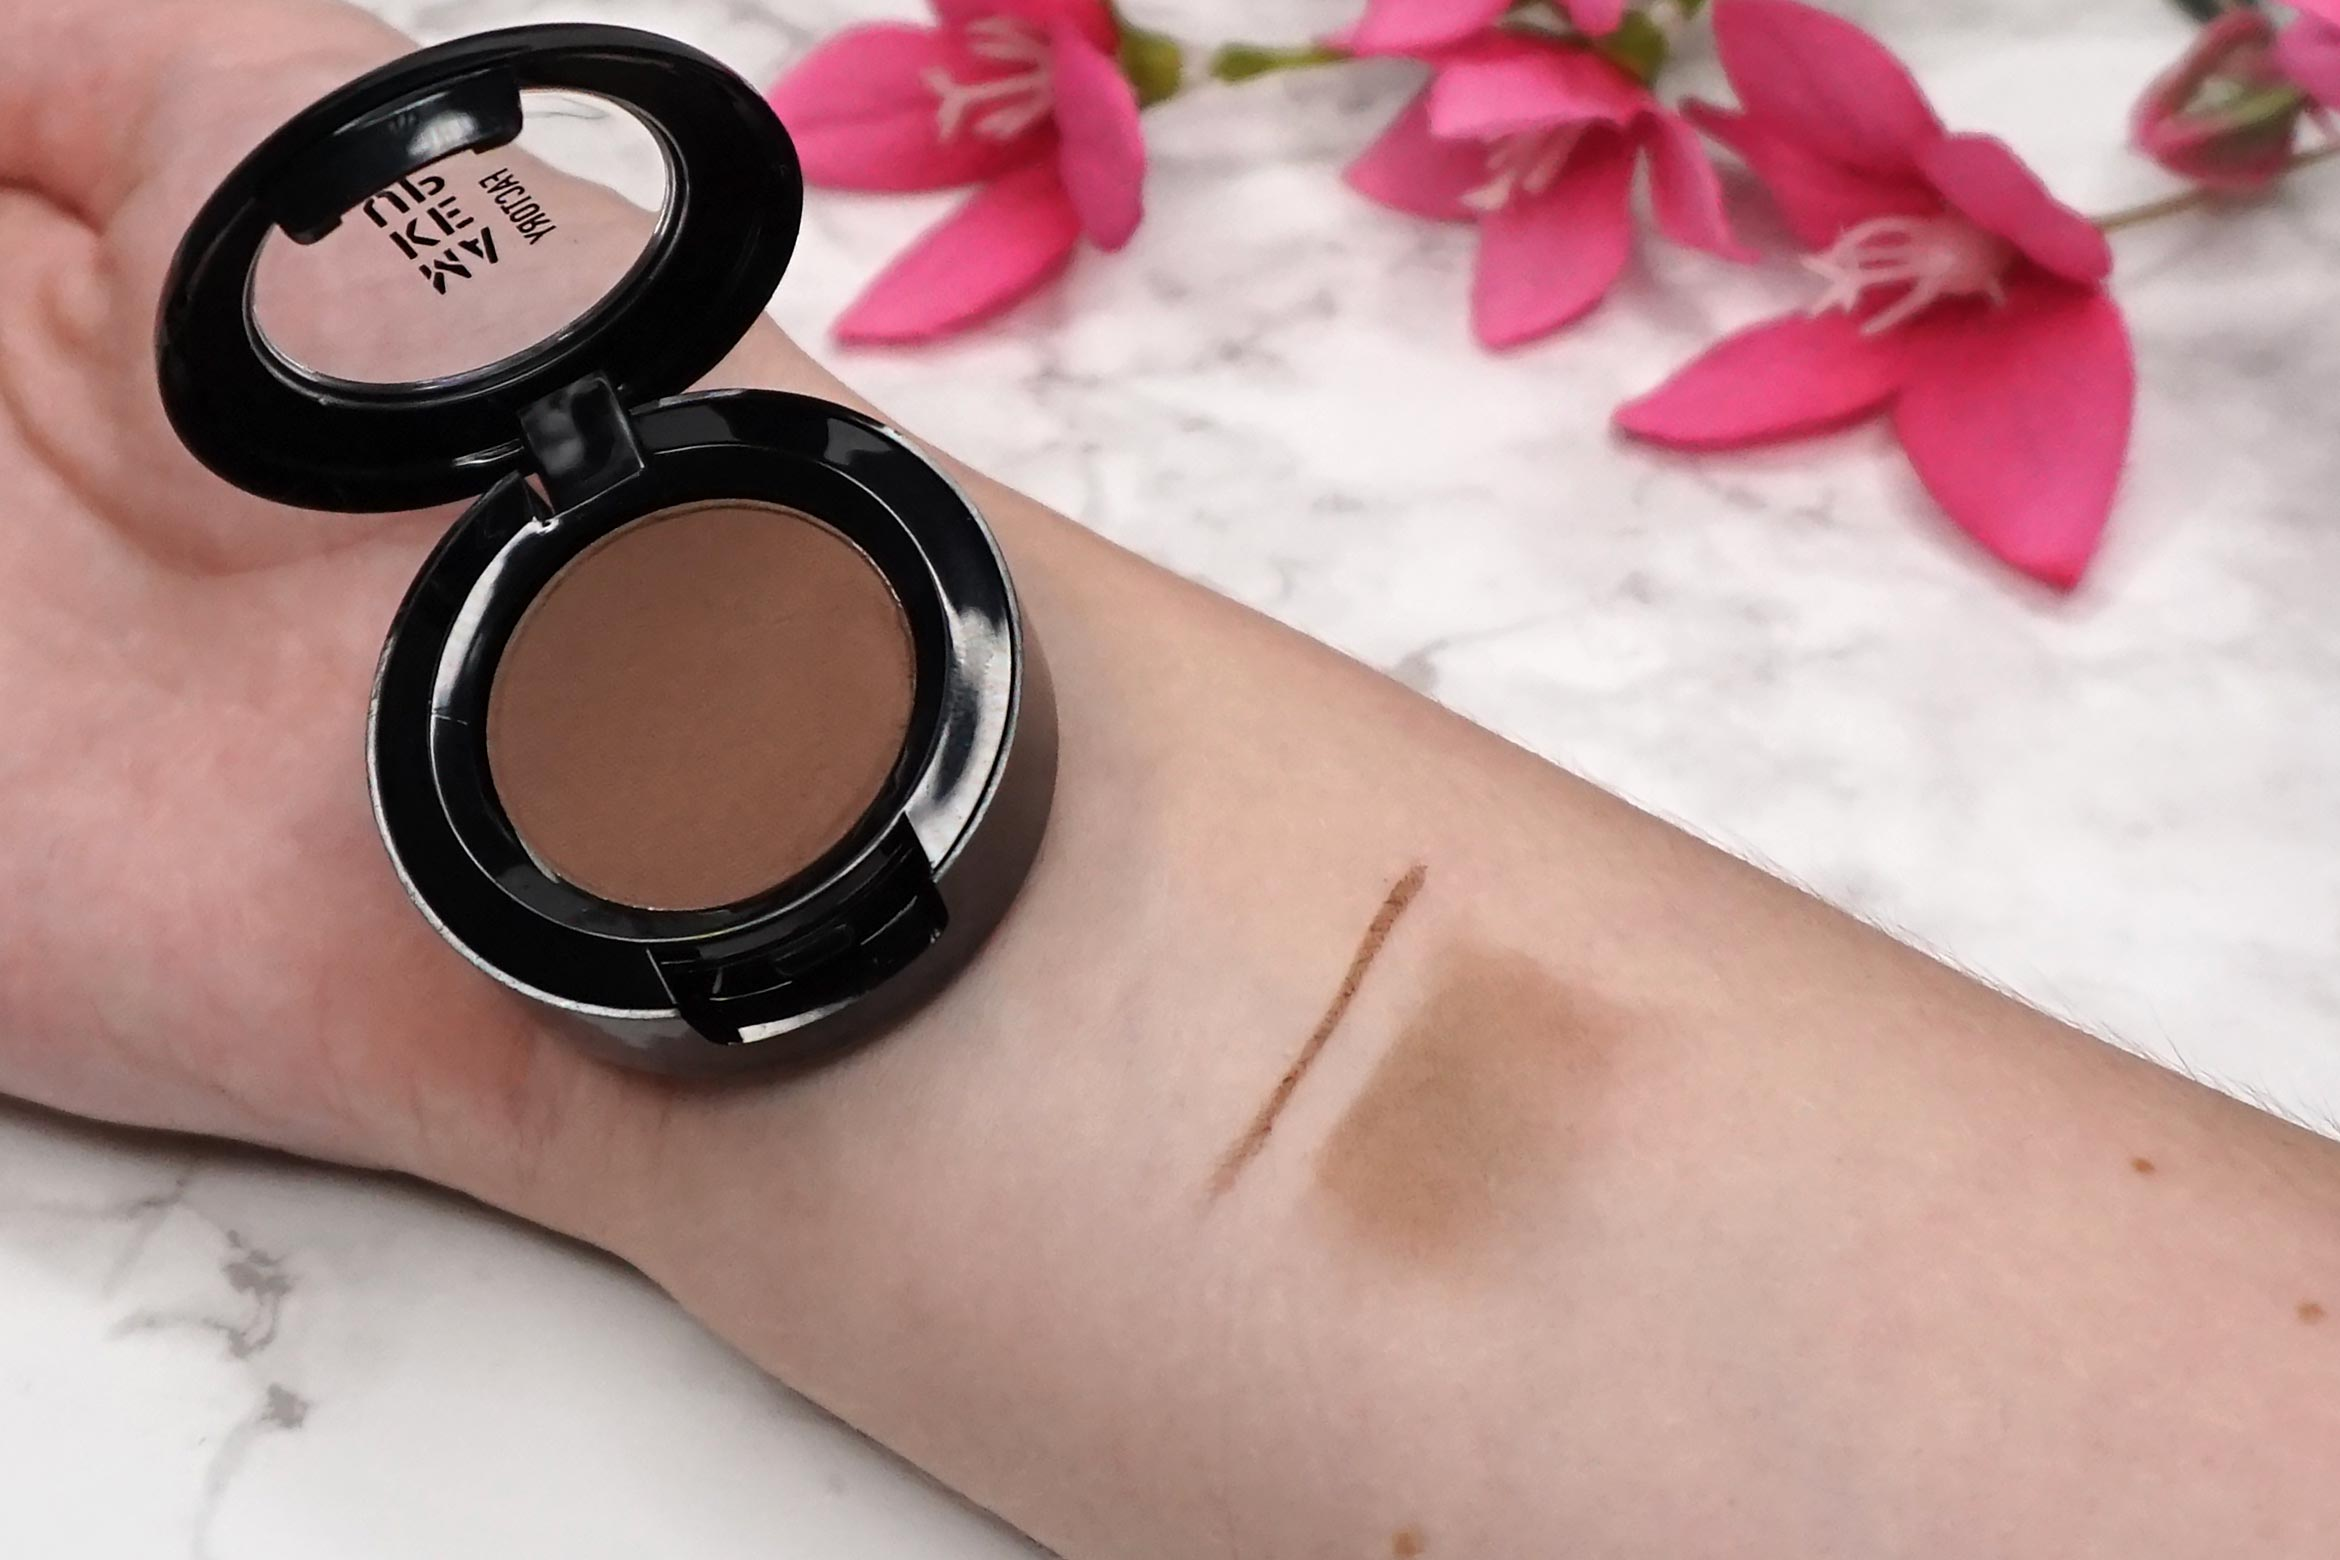 make-up-factory-eye-brow-powder-08-ash-brown-swatch-review